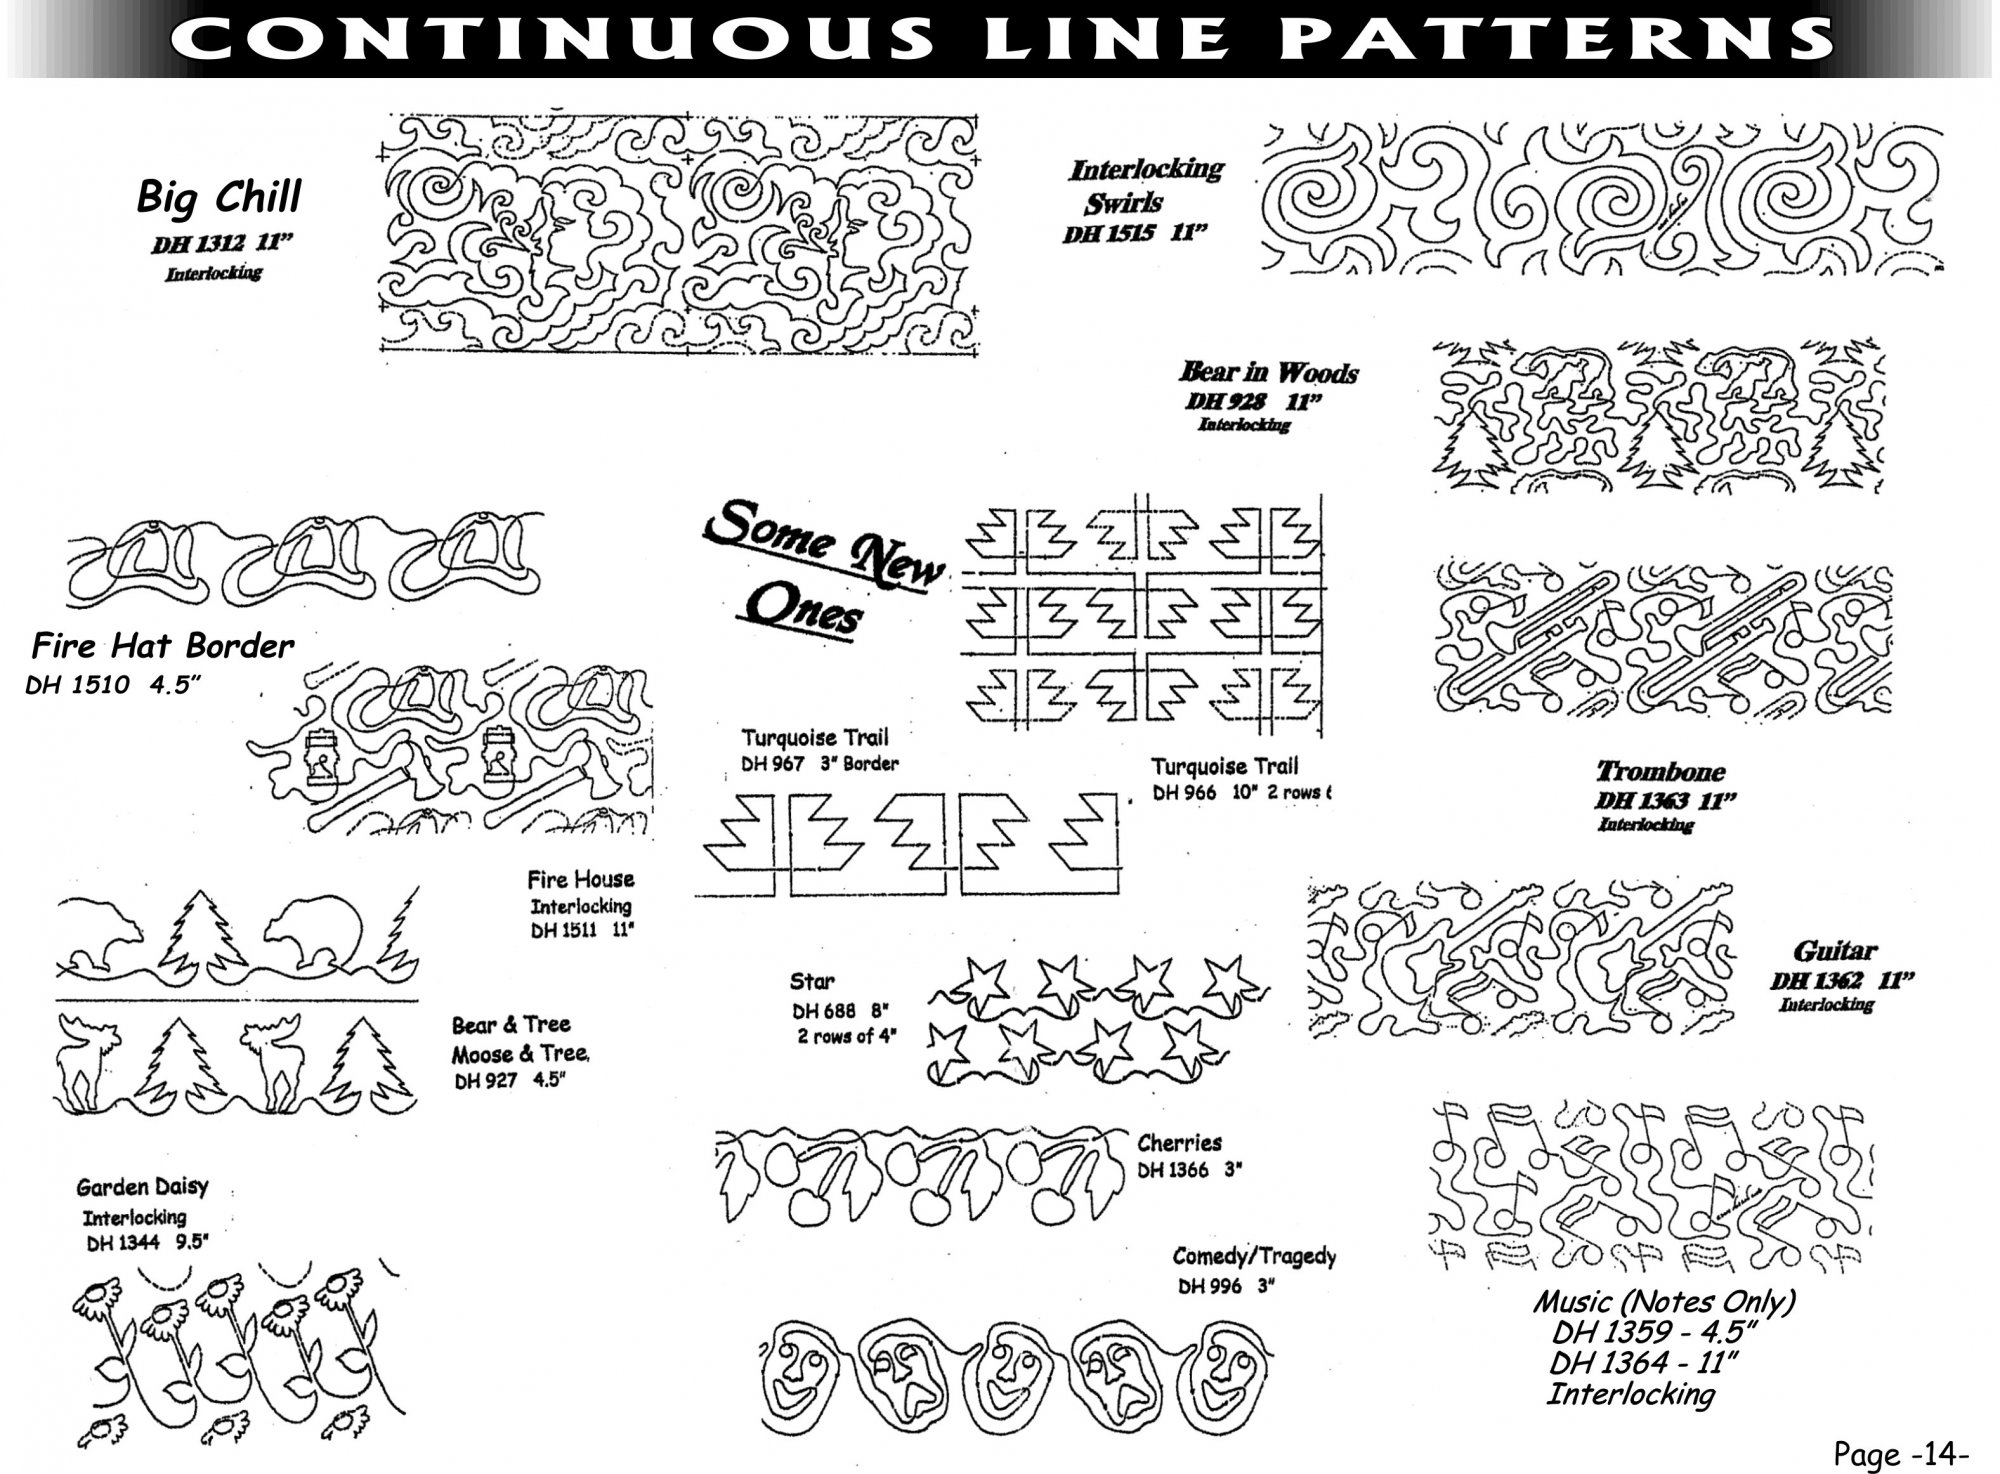 Pantographs-Continous Line Patterns-A- 2-6